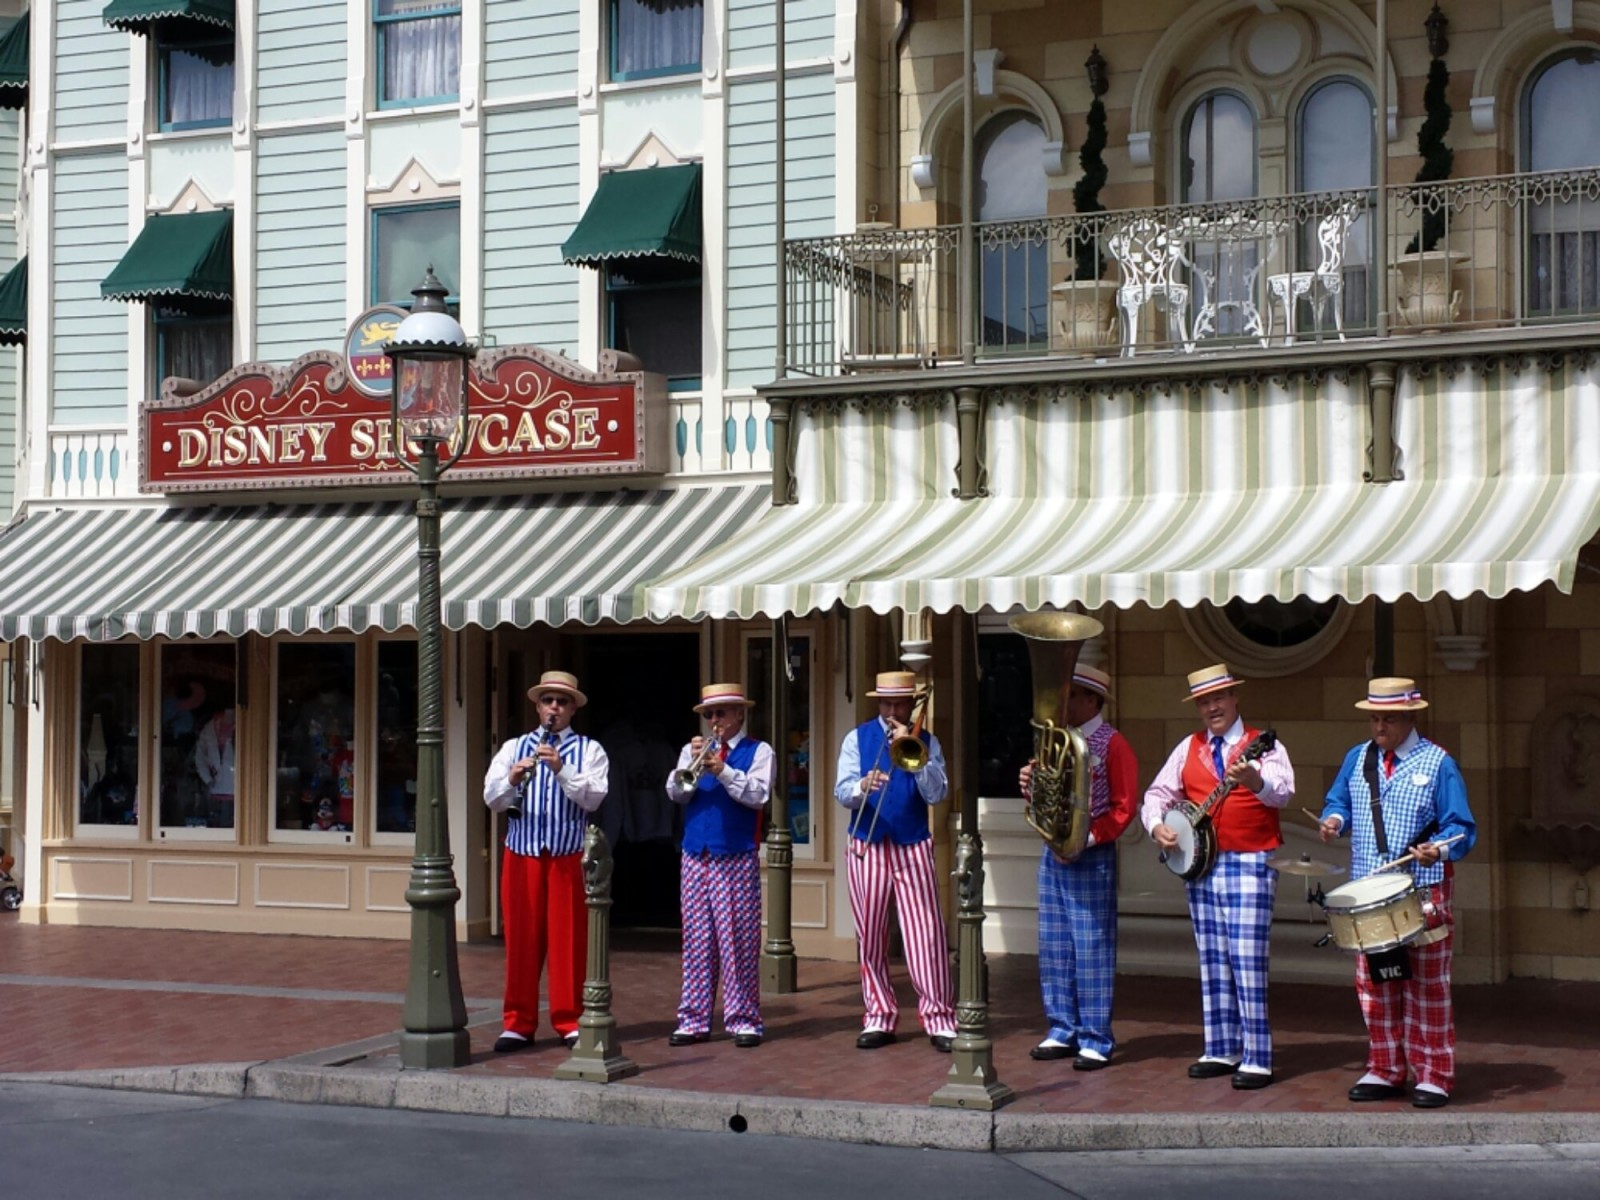 The Straw Hatters performing on Main Street USA as I entered the park